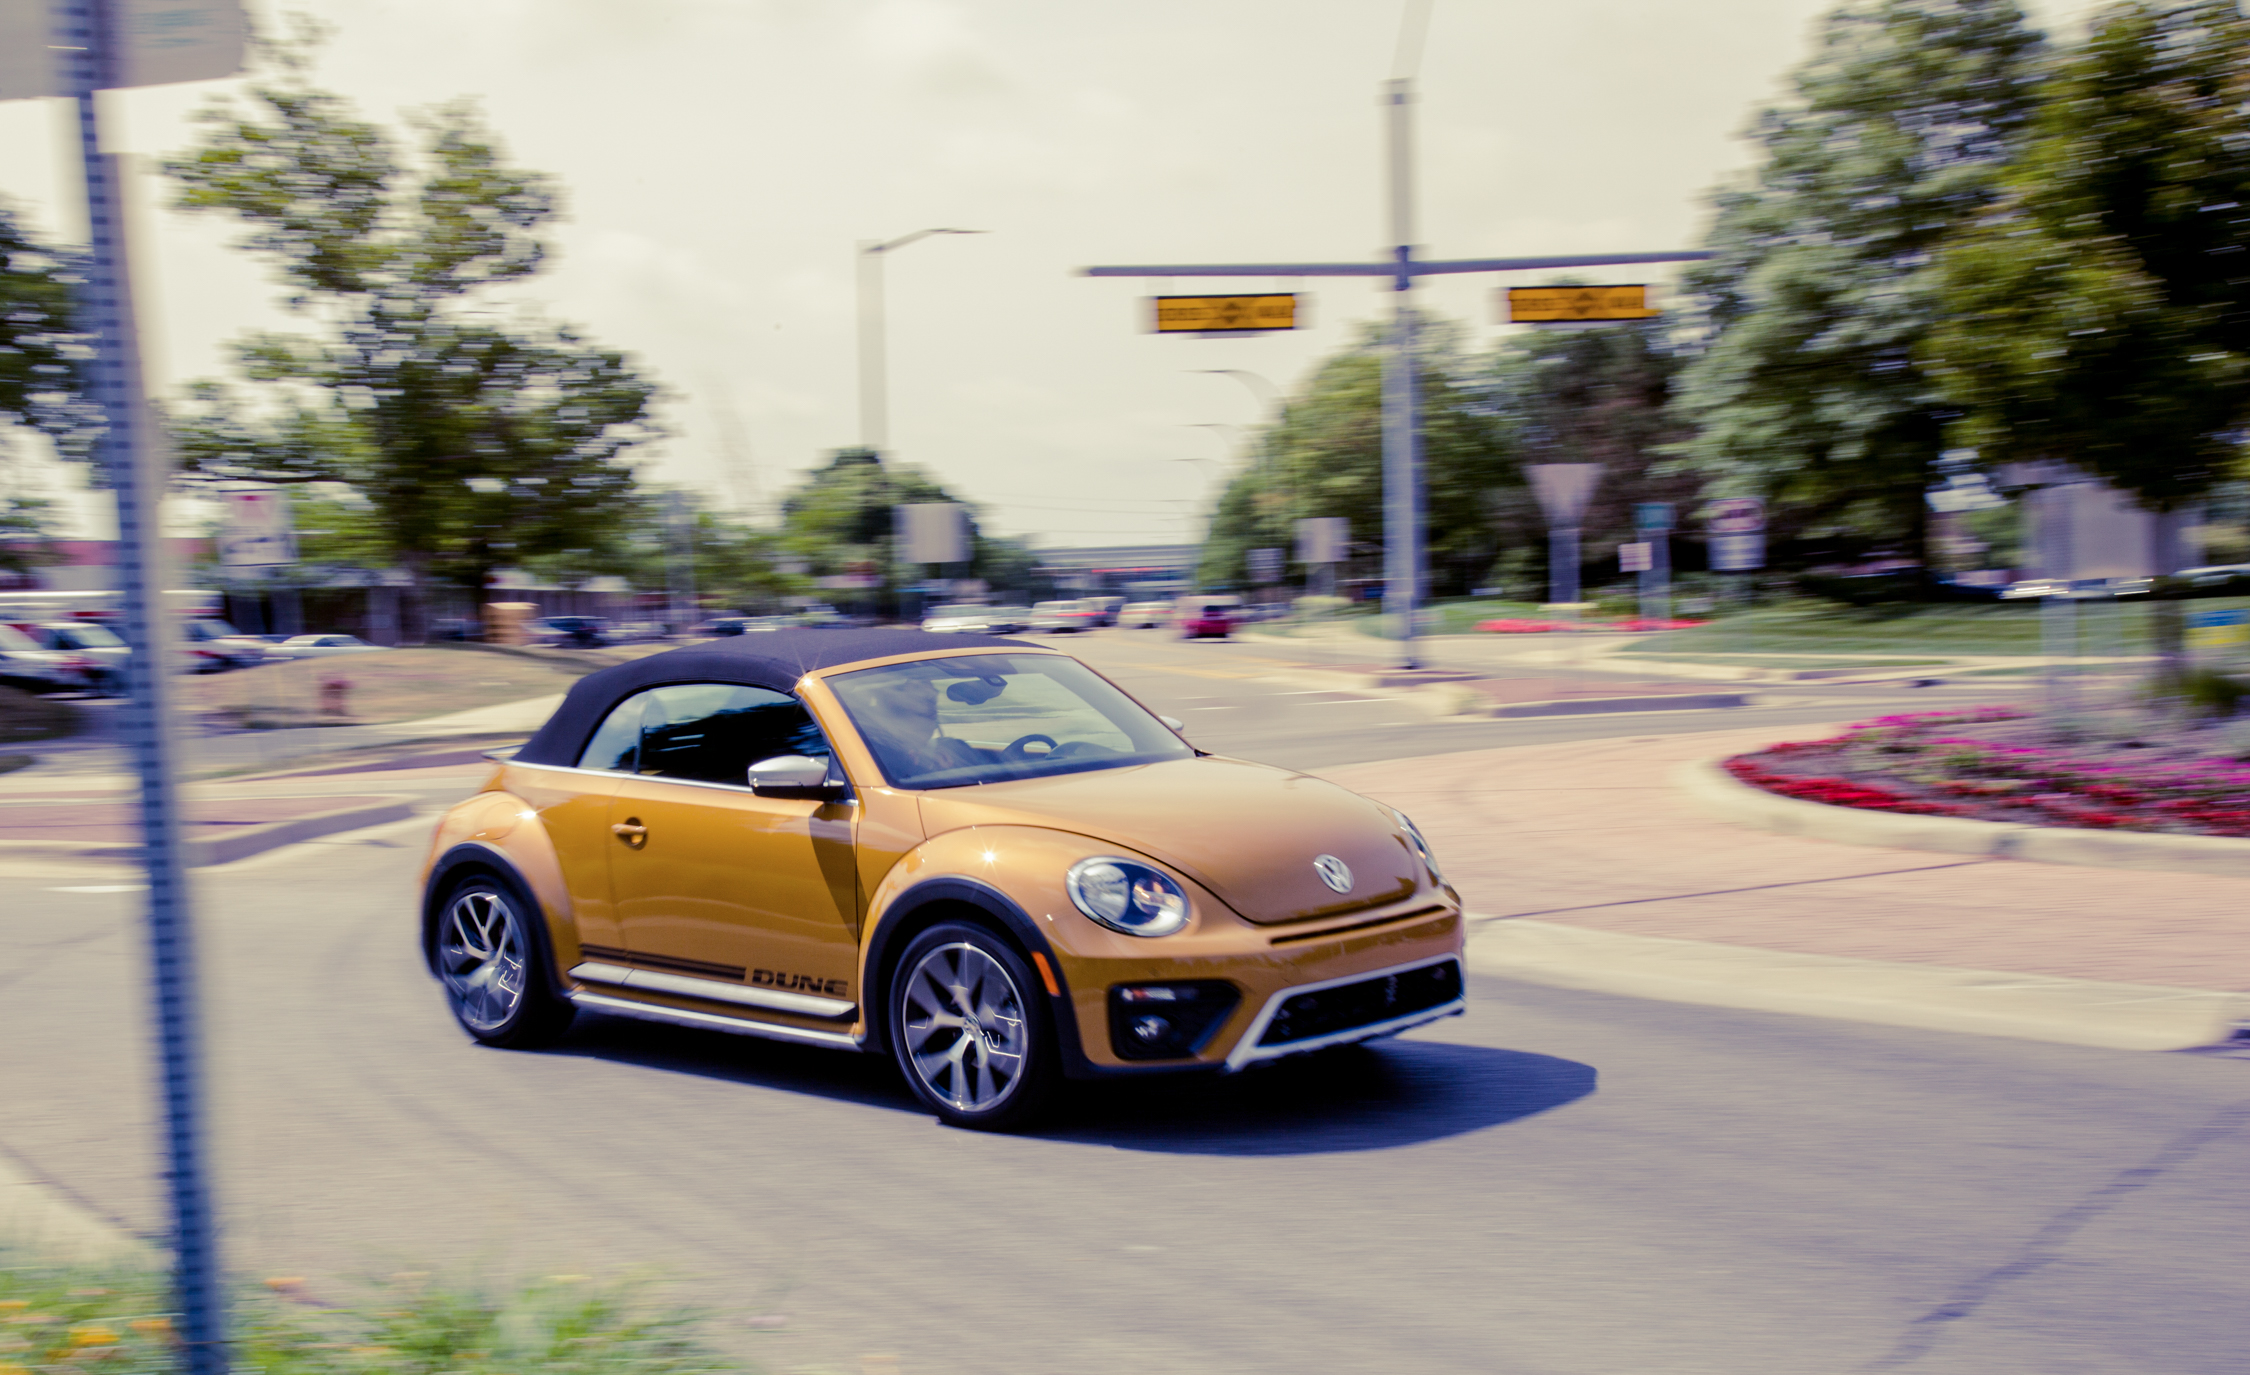 2017 Vw Beetle Dune Convertible (Photo 19 of 19)